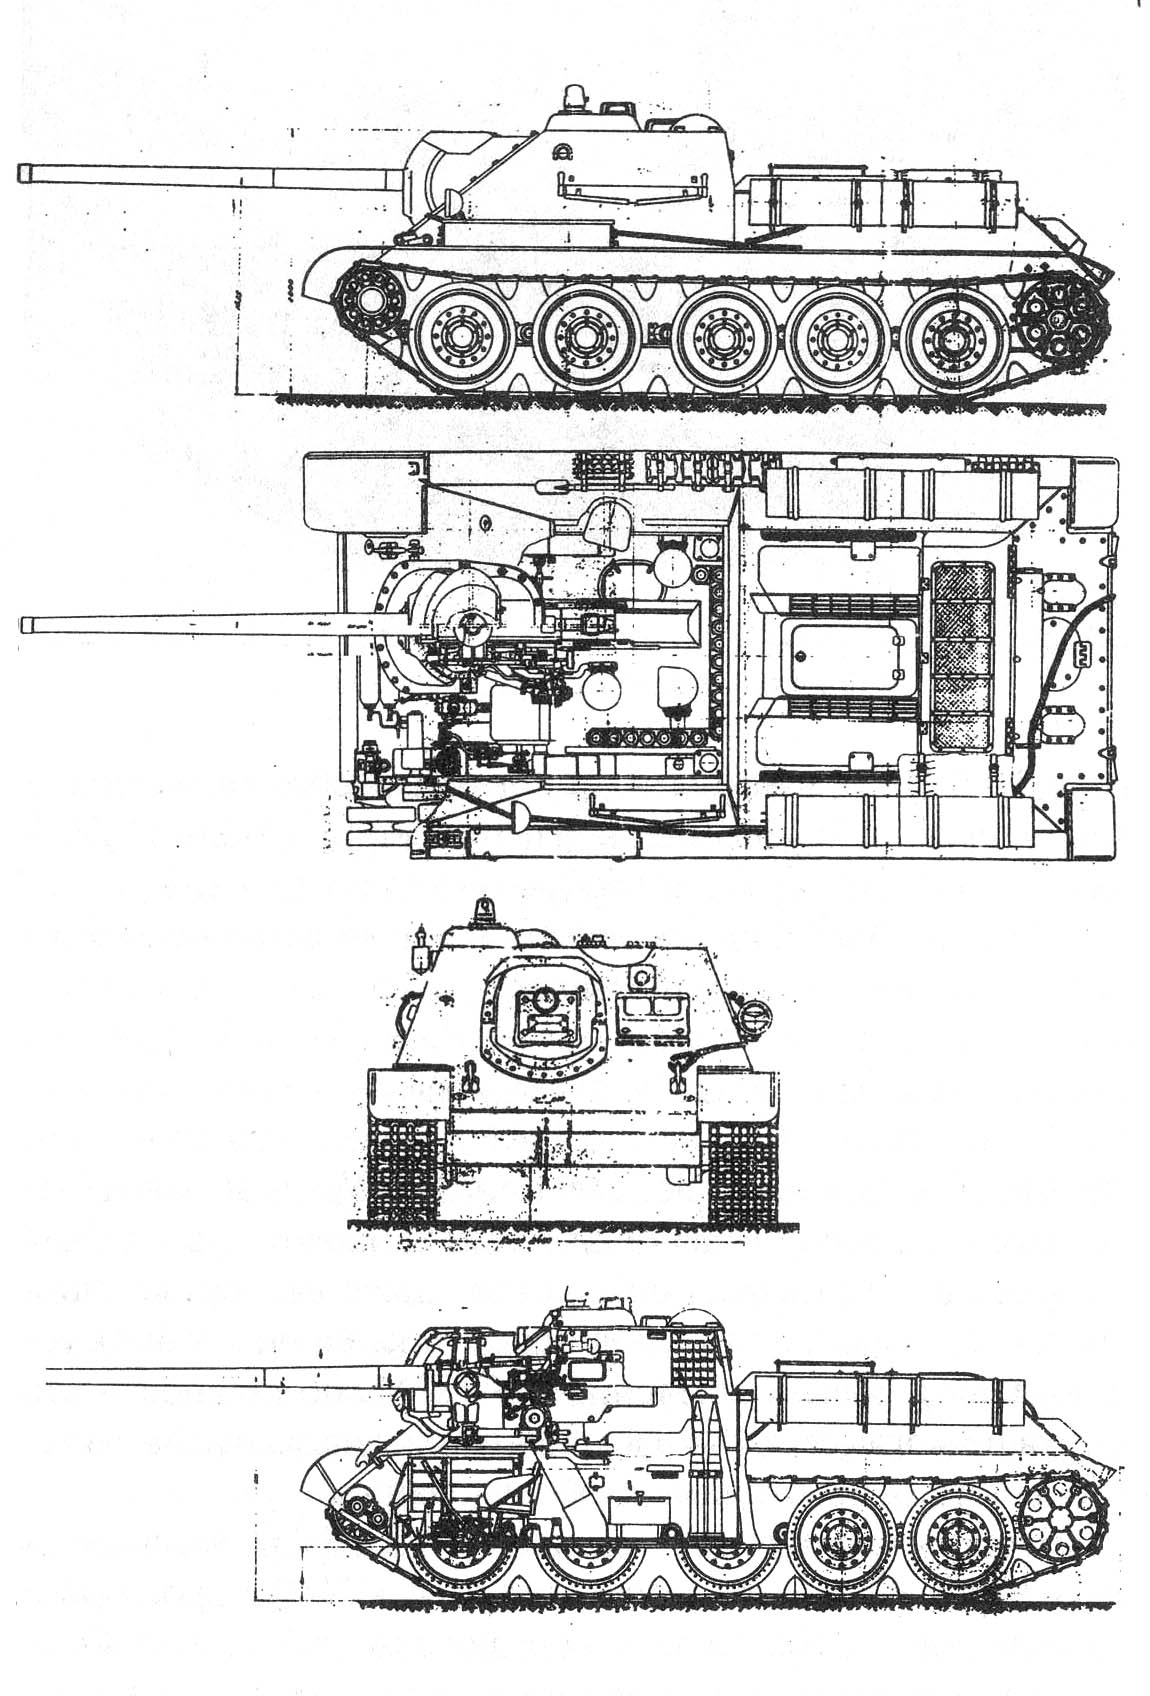 http://www.aviarmor.net/tww2/photo/ussr/su-85/su85-1_3.jpg